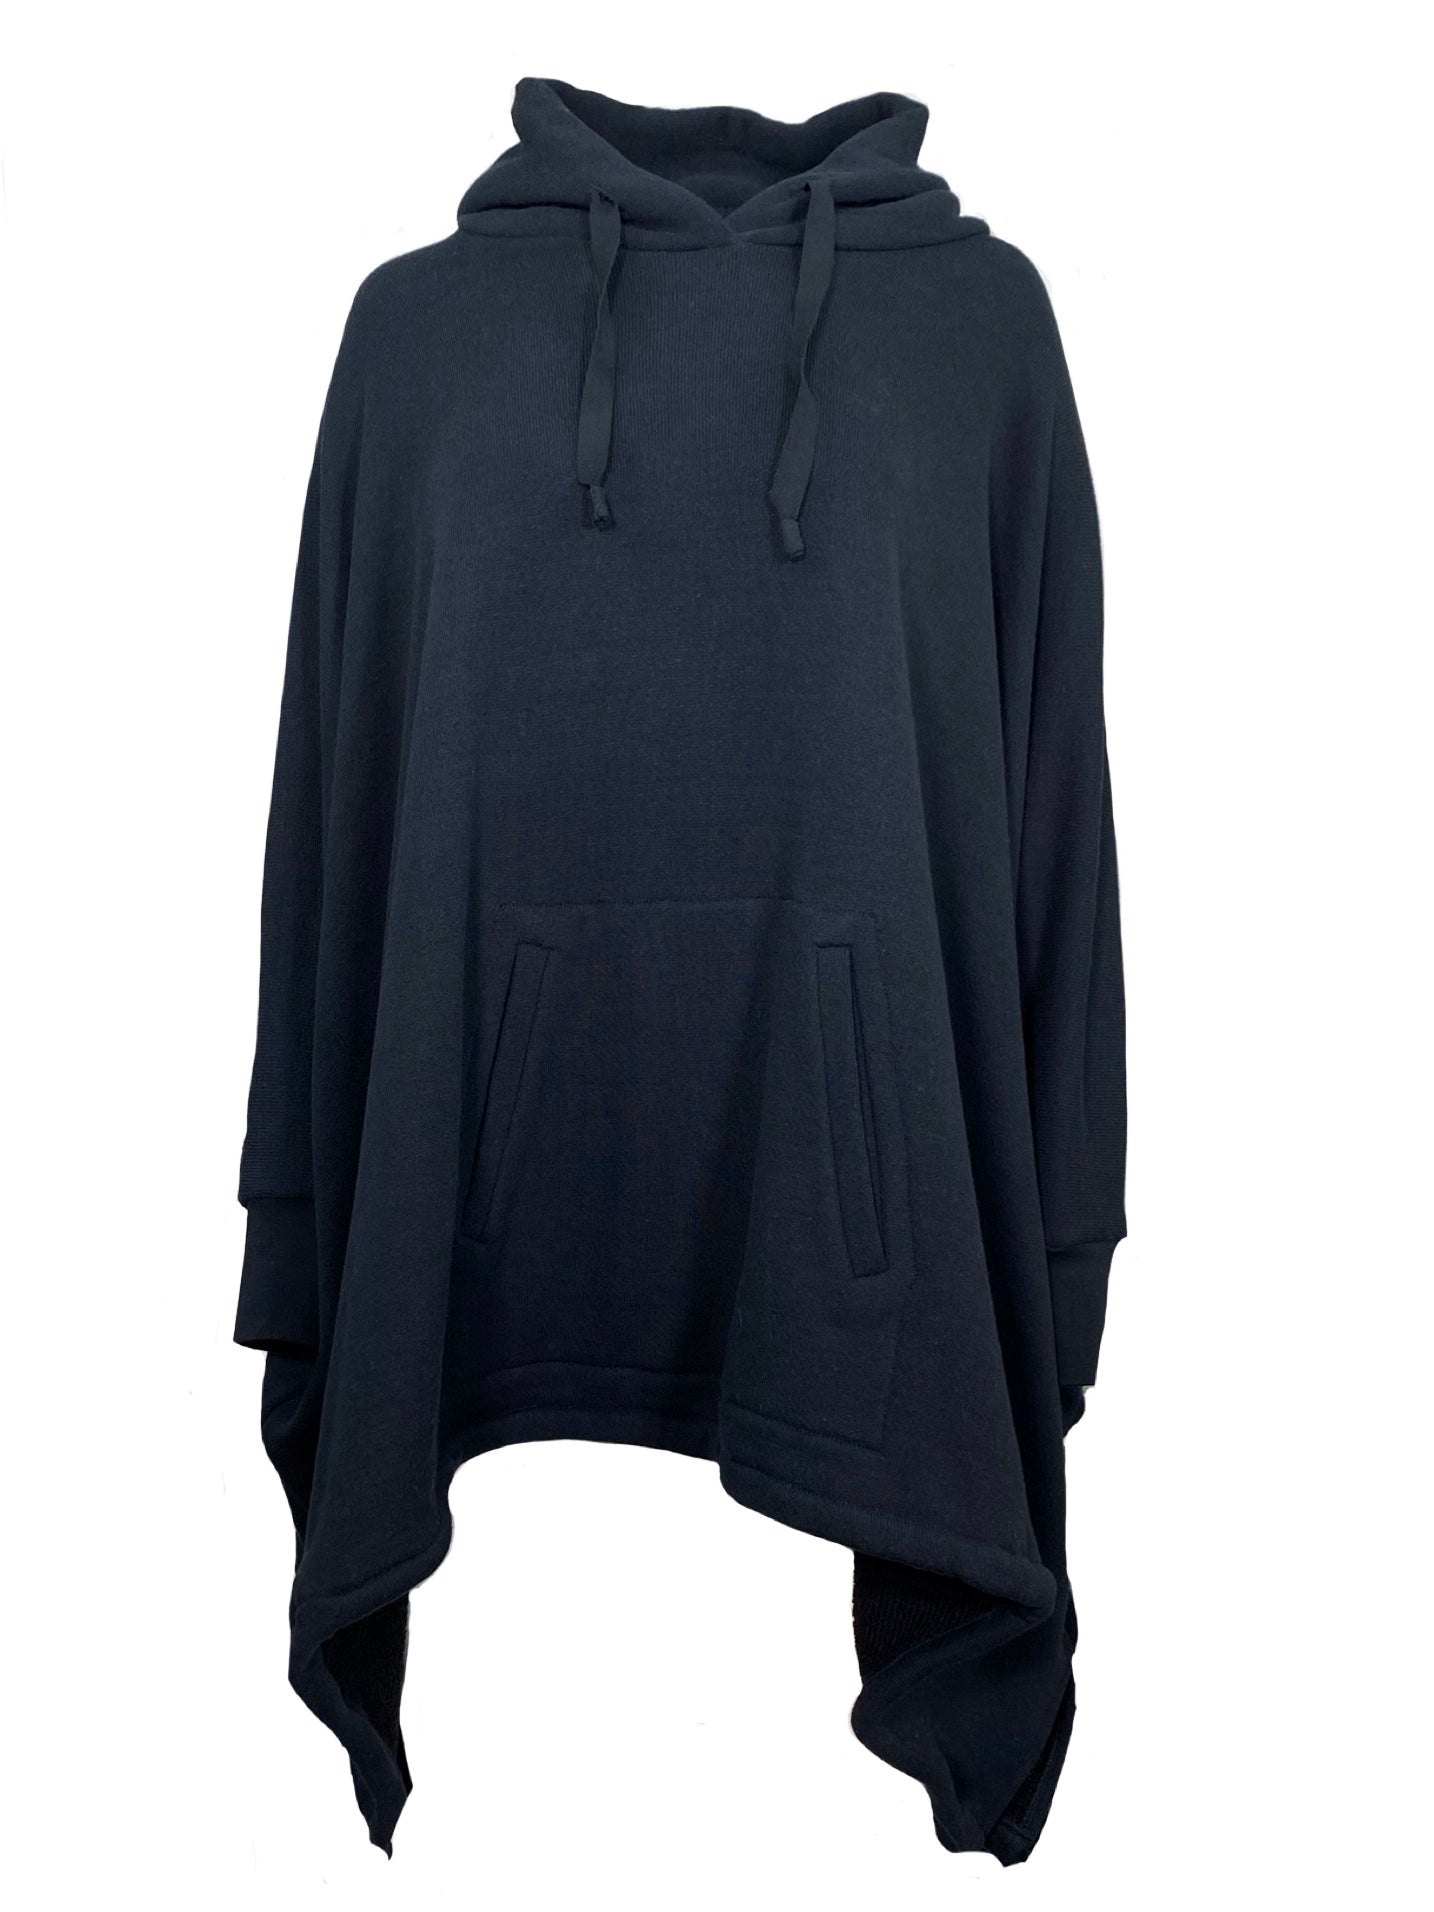 HOODY PONCHO TOP  / C/W SOFT TERRY - C3 (4694583377999)